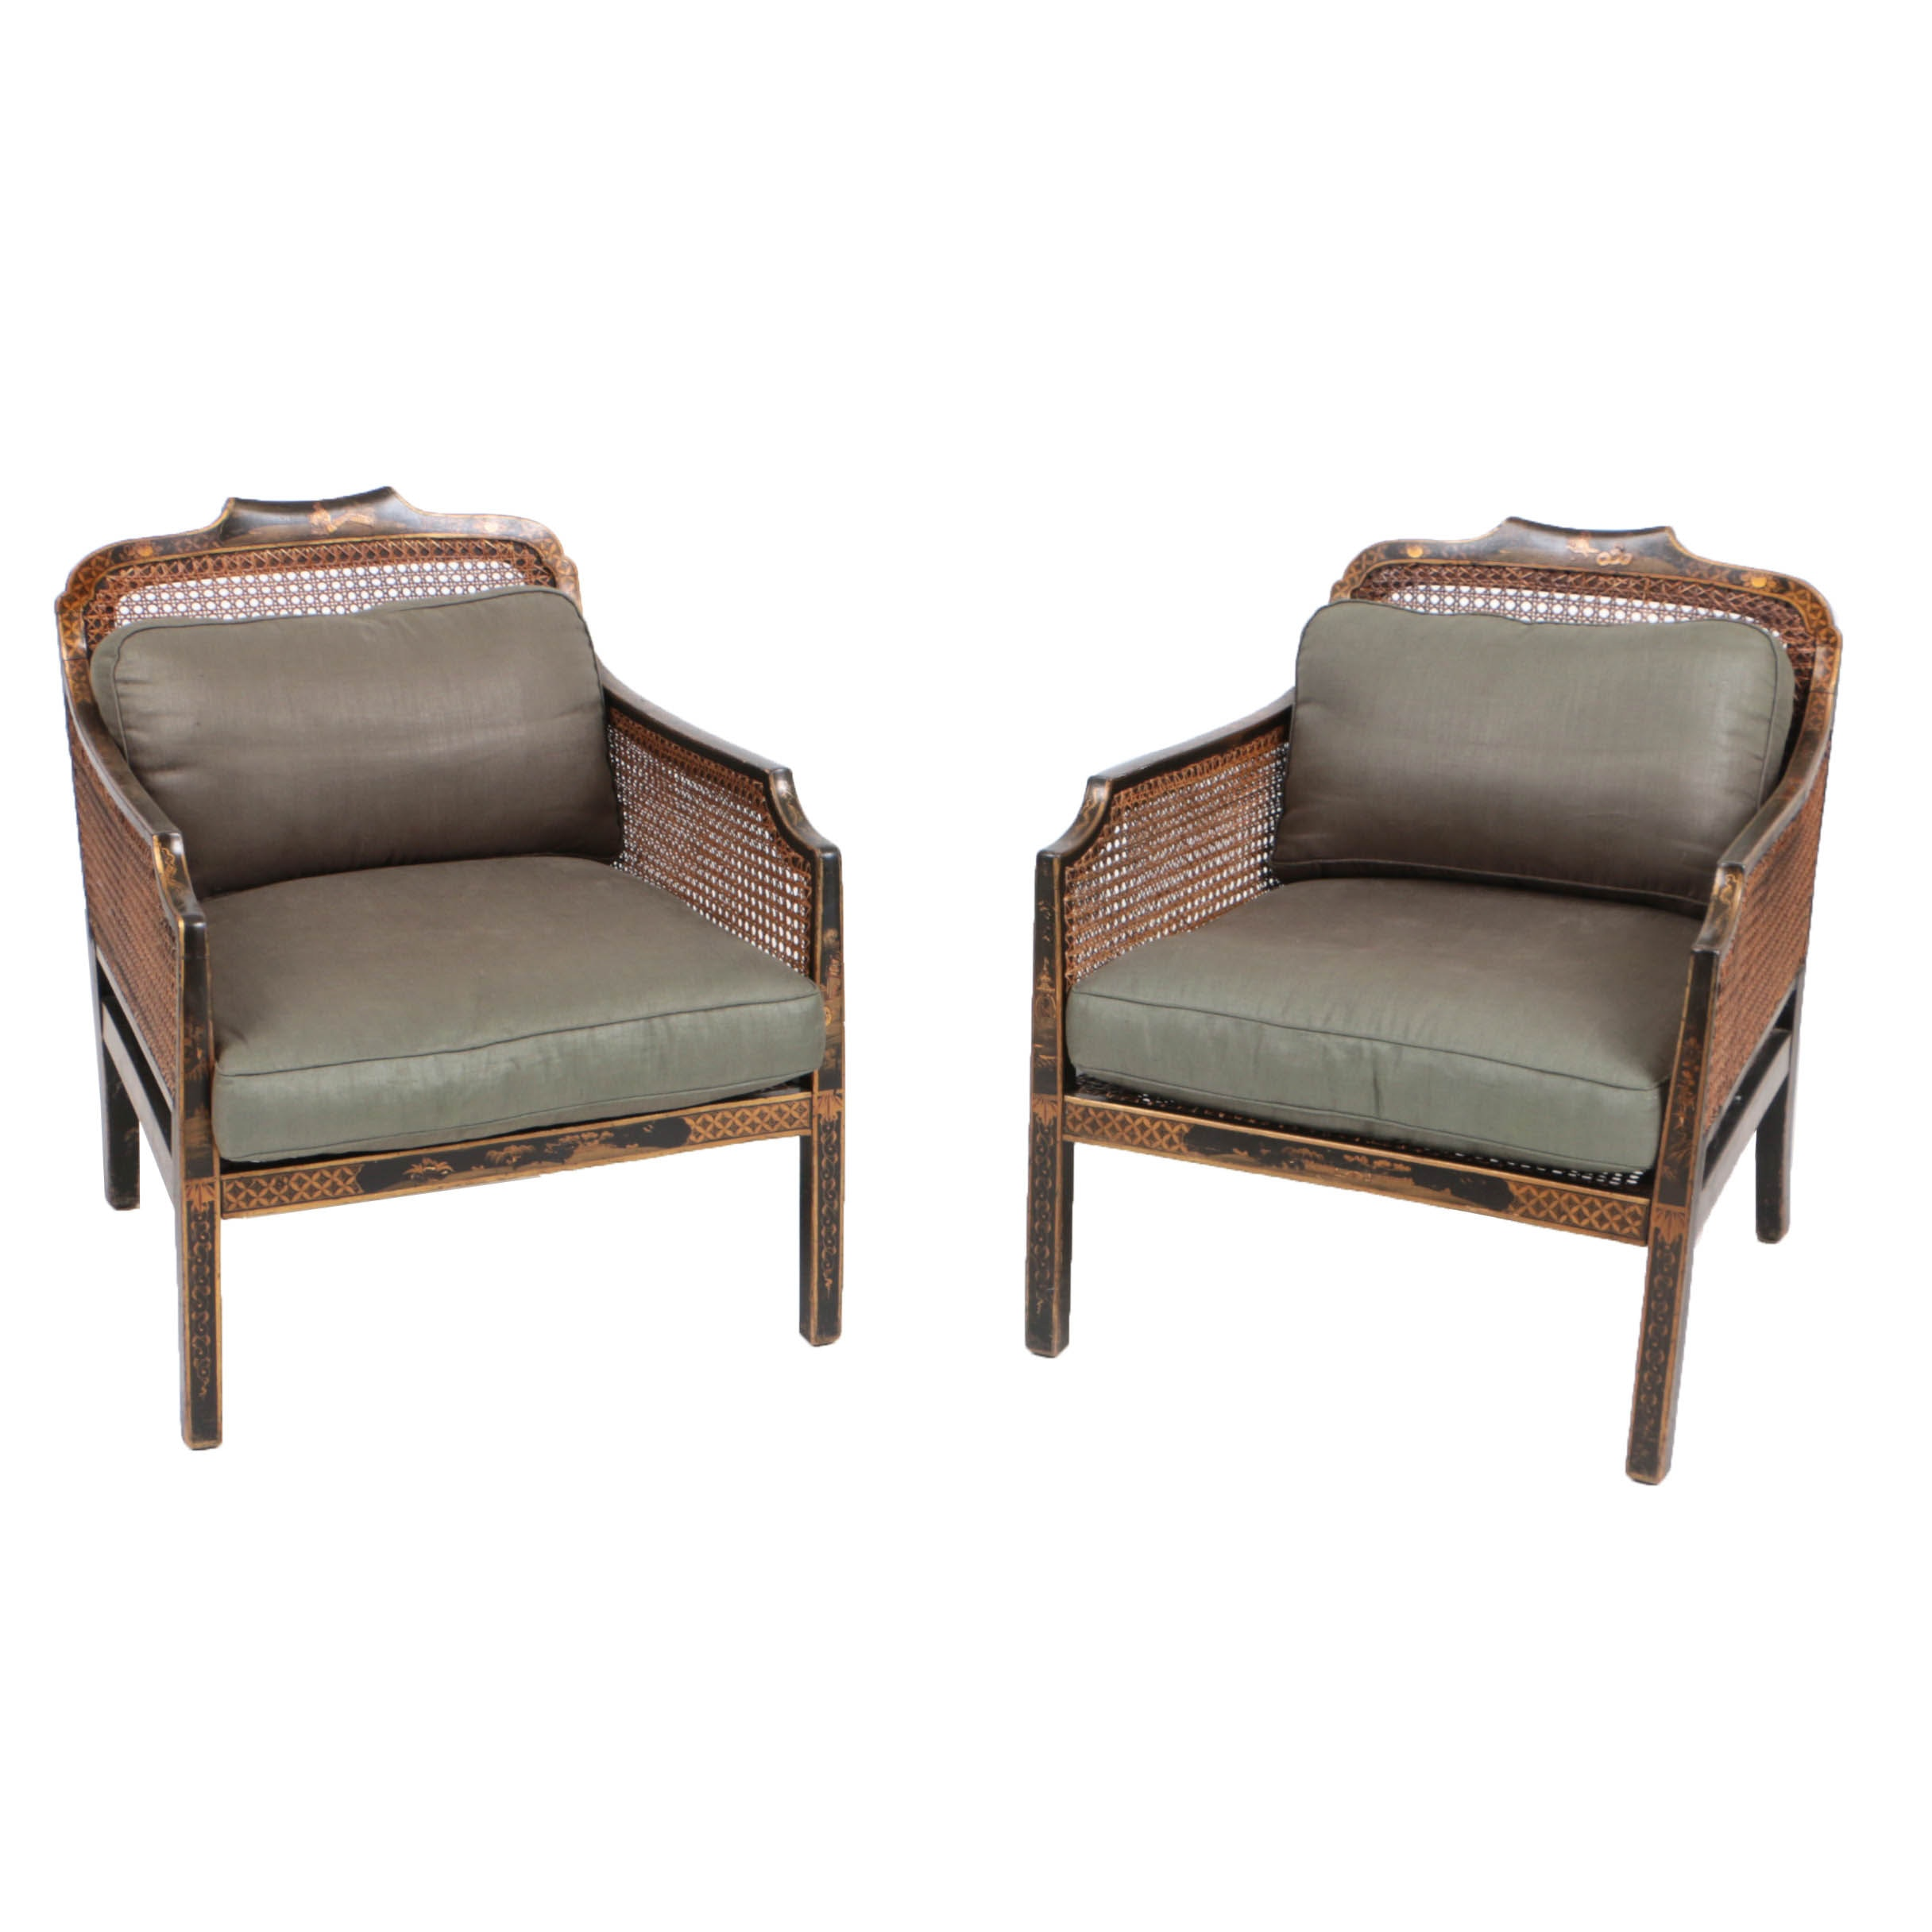 Pair of Early 20th Century Chinoiserie Caned Arm Chairs